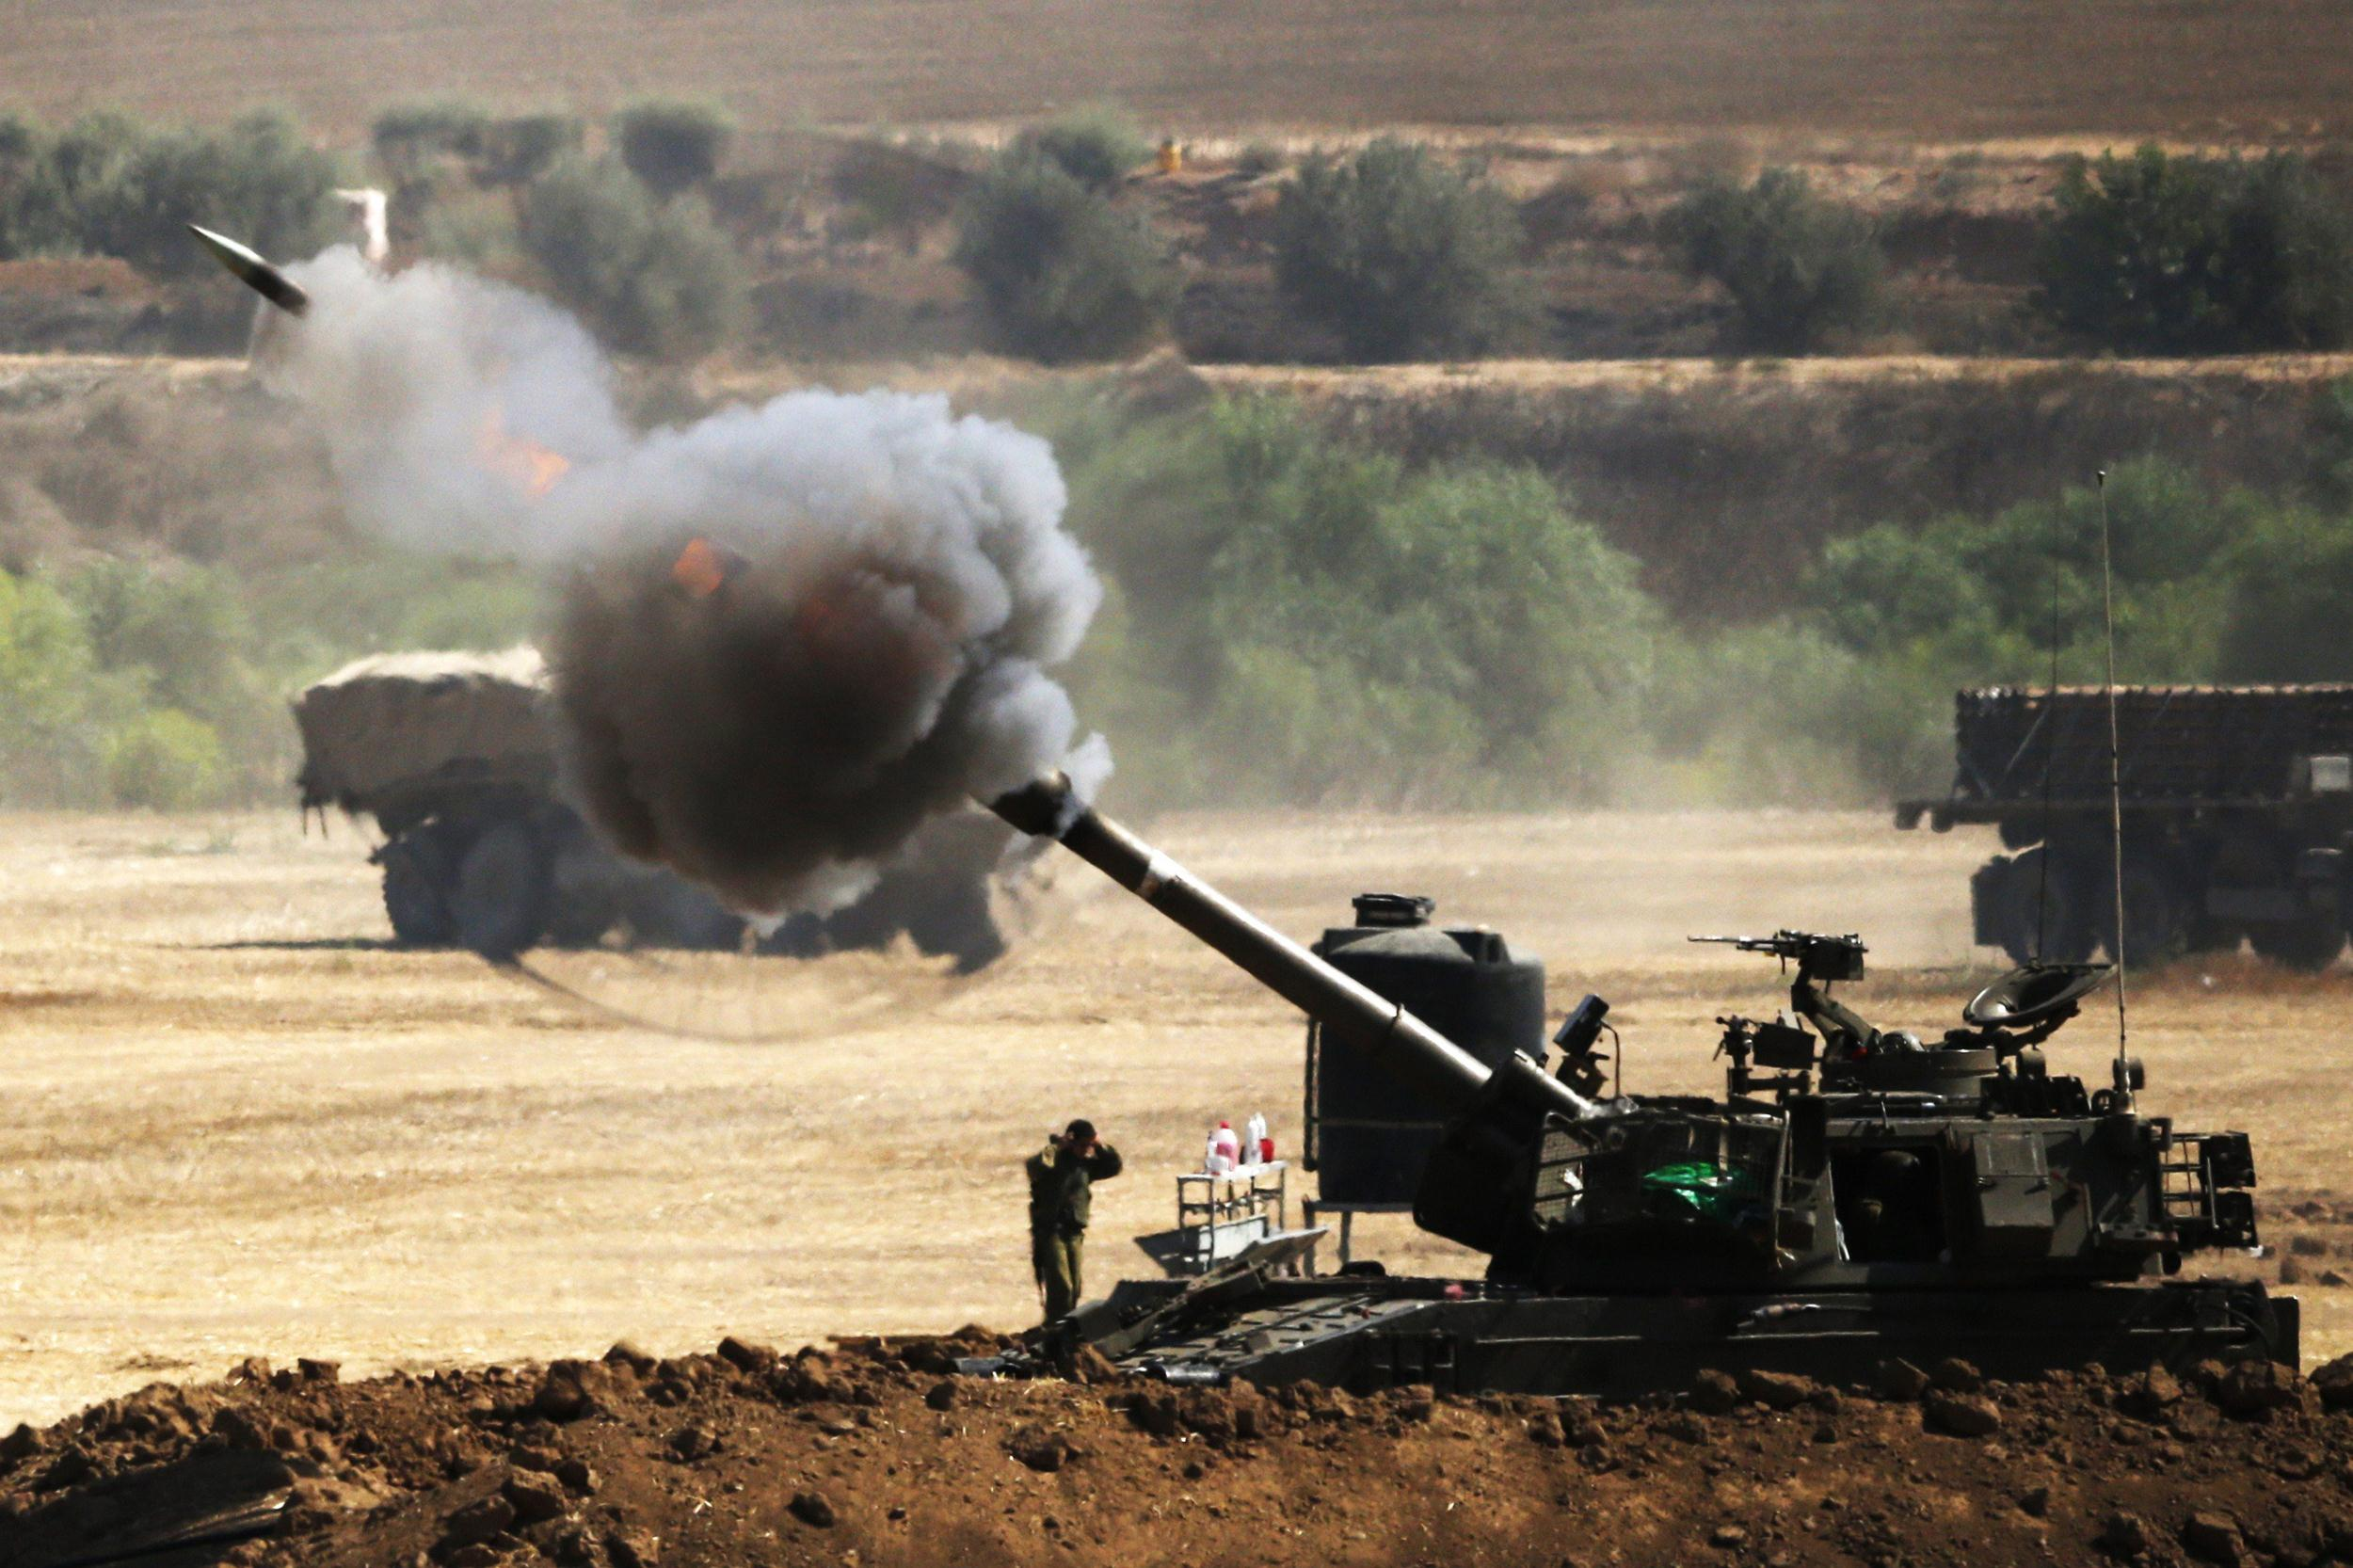 Image: An Israeli artillery gun fires a 155mm shell towards targets from their position near Israel's border with the Gaza Strip